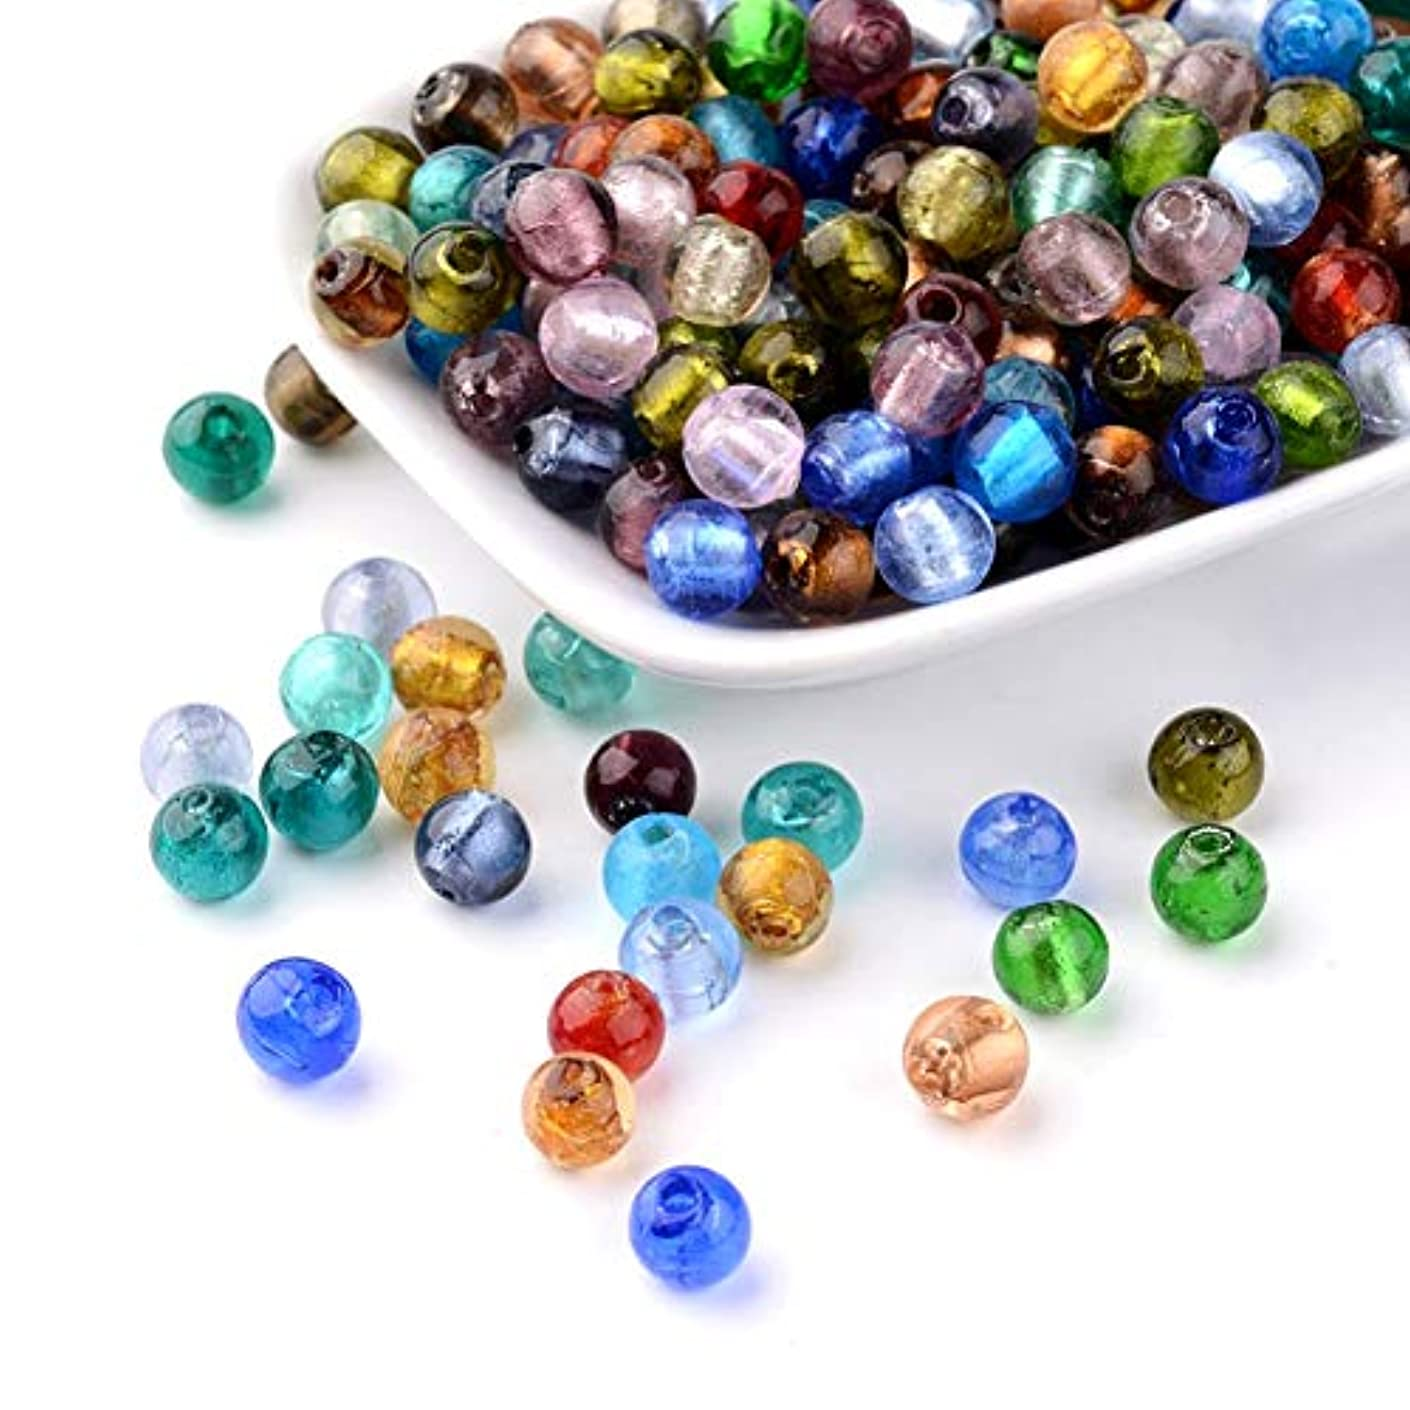 Craftdady 200Pcs Random Mixed Colors Handmade Silver Foil Lampwork Glass Round Spacer Beads 8mm for DIY Jewelry Craft Making